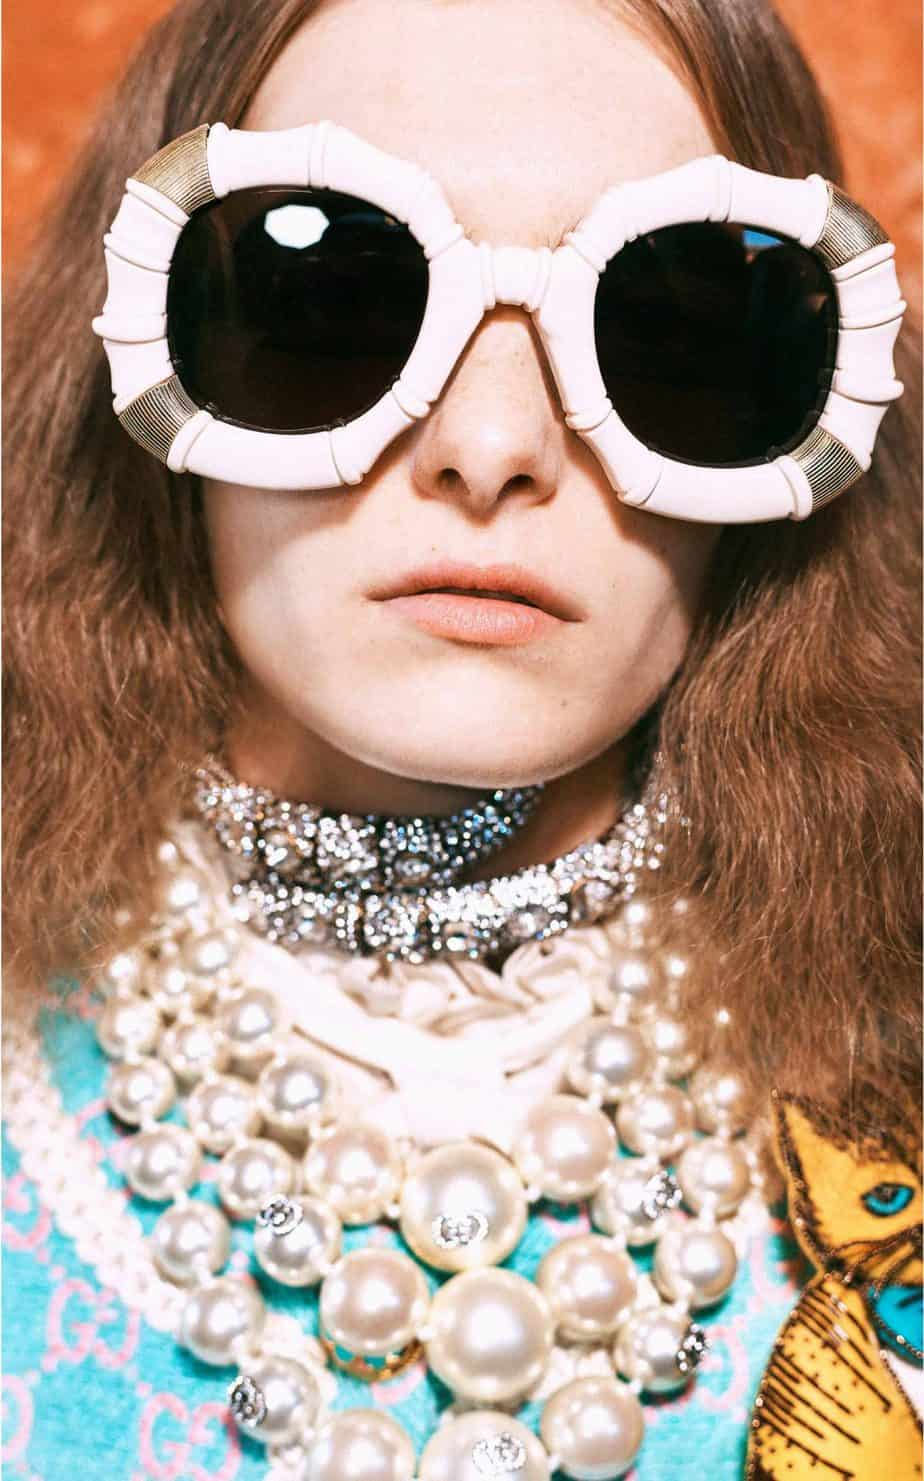 GUCCI, FALL 2019. WOMEN'S FASHION, Photographer Harmony Korine, Art Director, Christopher Simmonds - 7